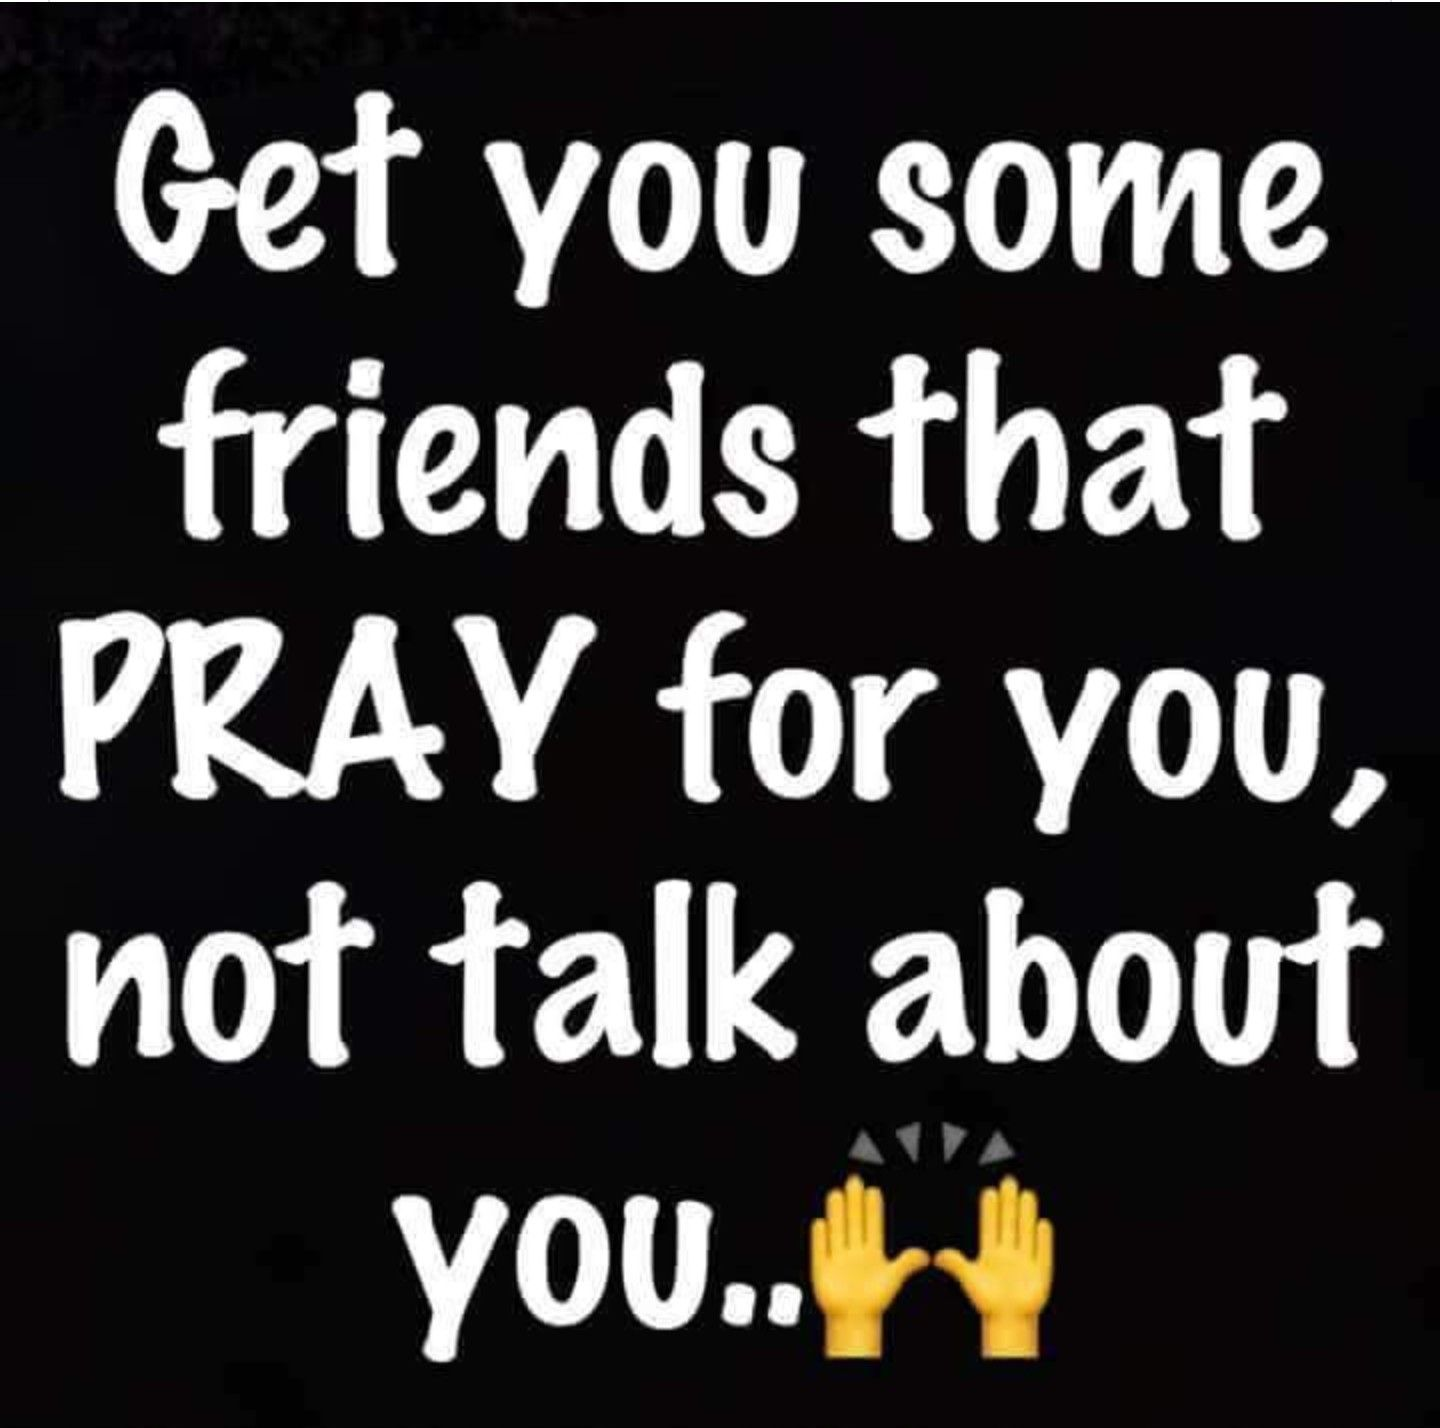 Get you some friends that pray for you not talk about you